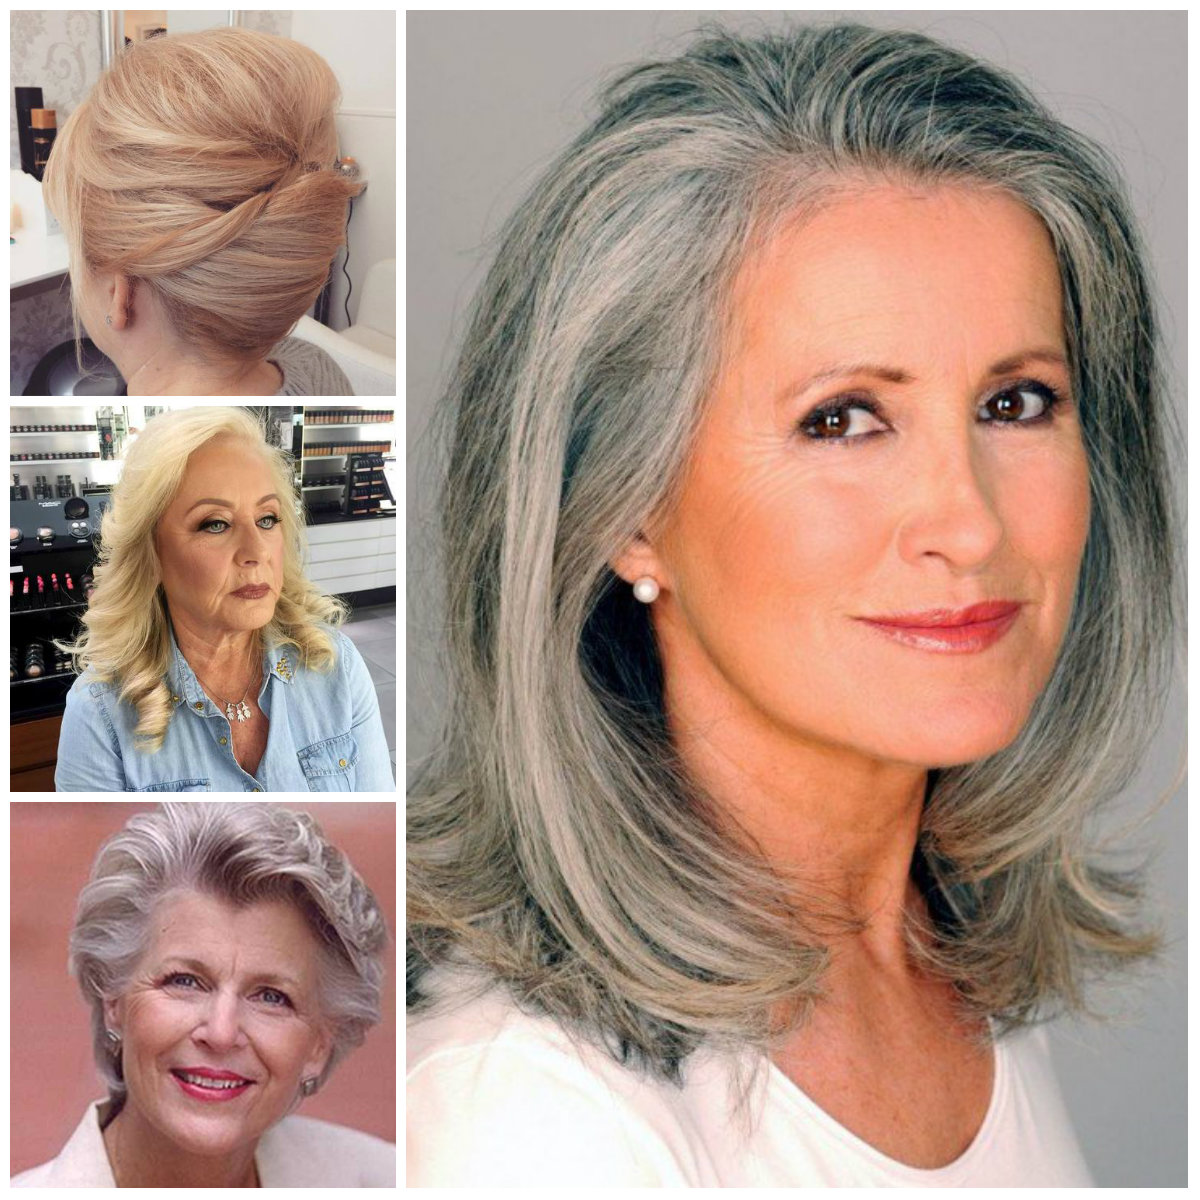 hairstyles for mature women | 2019 haircuts, hairstyles and hair colors